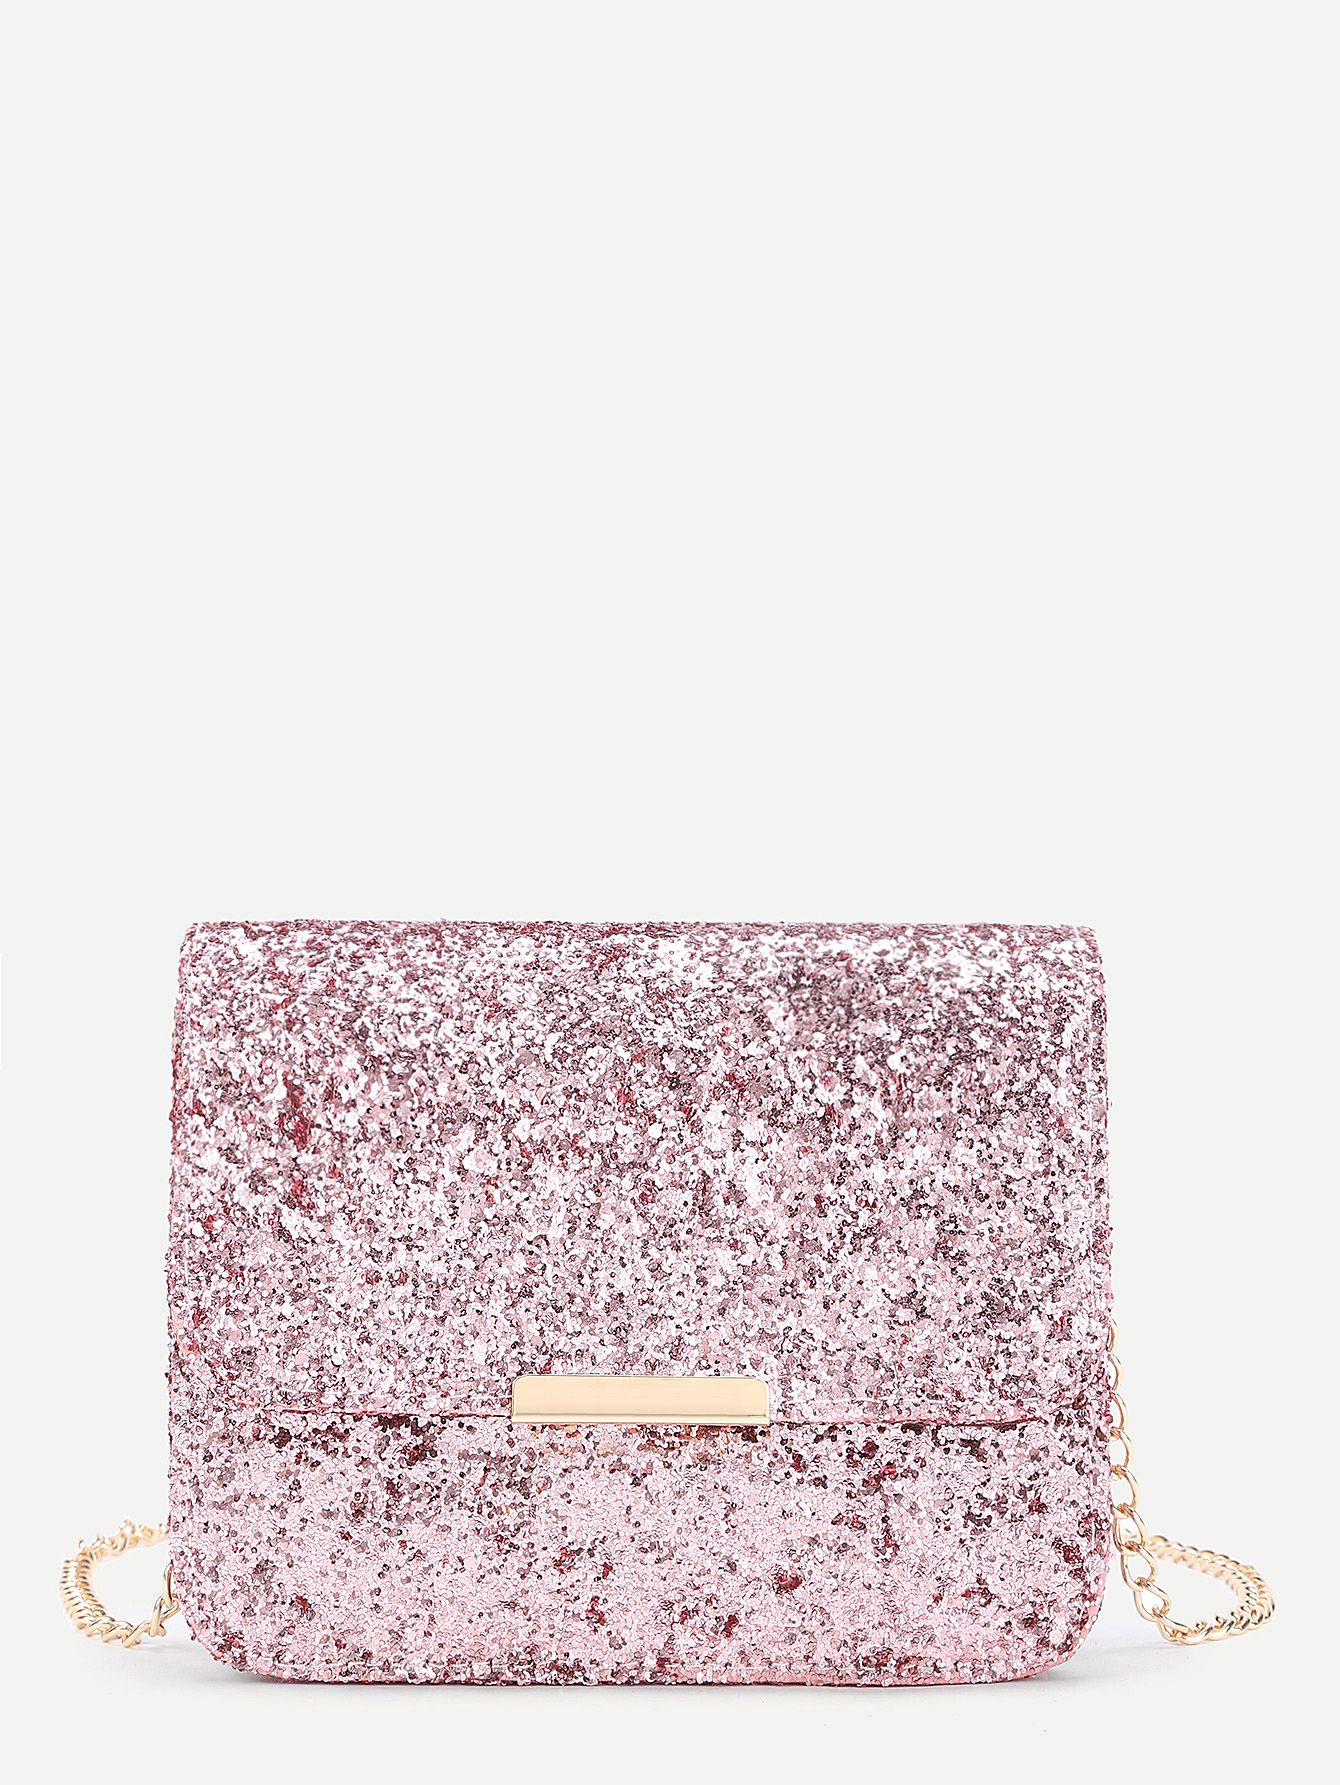 8975780e23d59 Shop Metal Detail Sequin Flap Bag With Chain online. SheIn offers Metal  Detail Sequin Flap Bag With Chain & more to fit your fashionable needs.